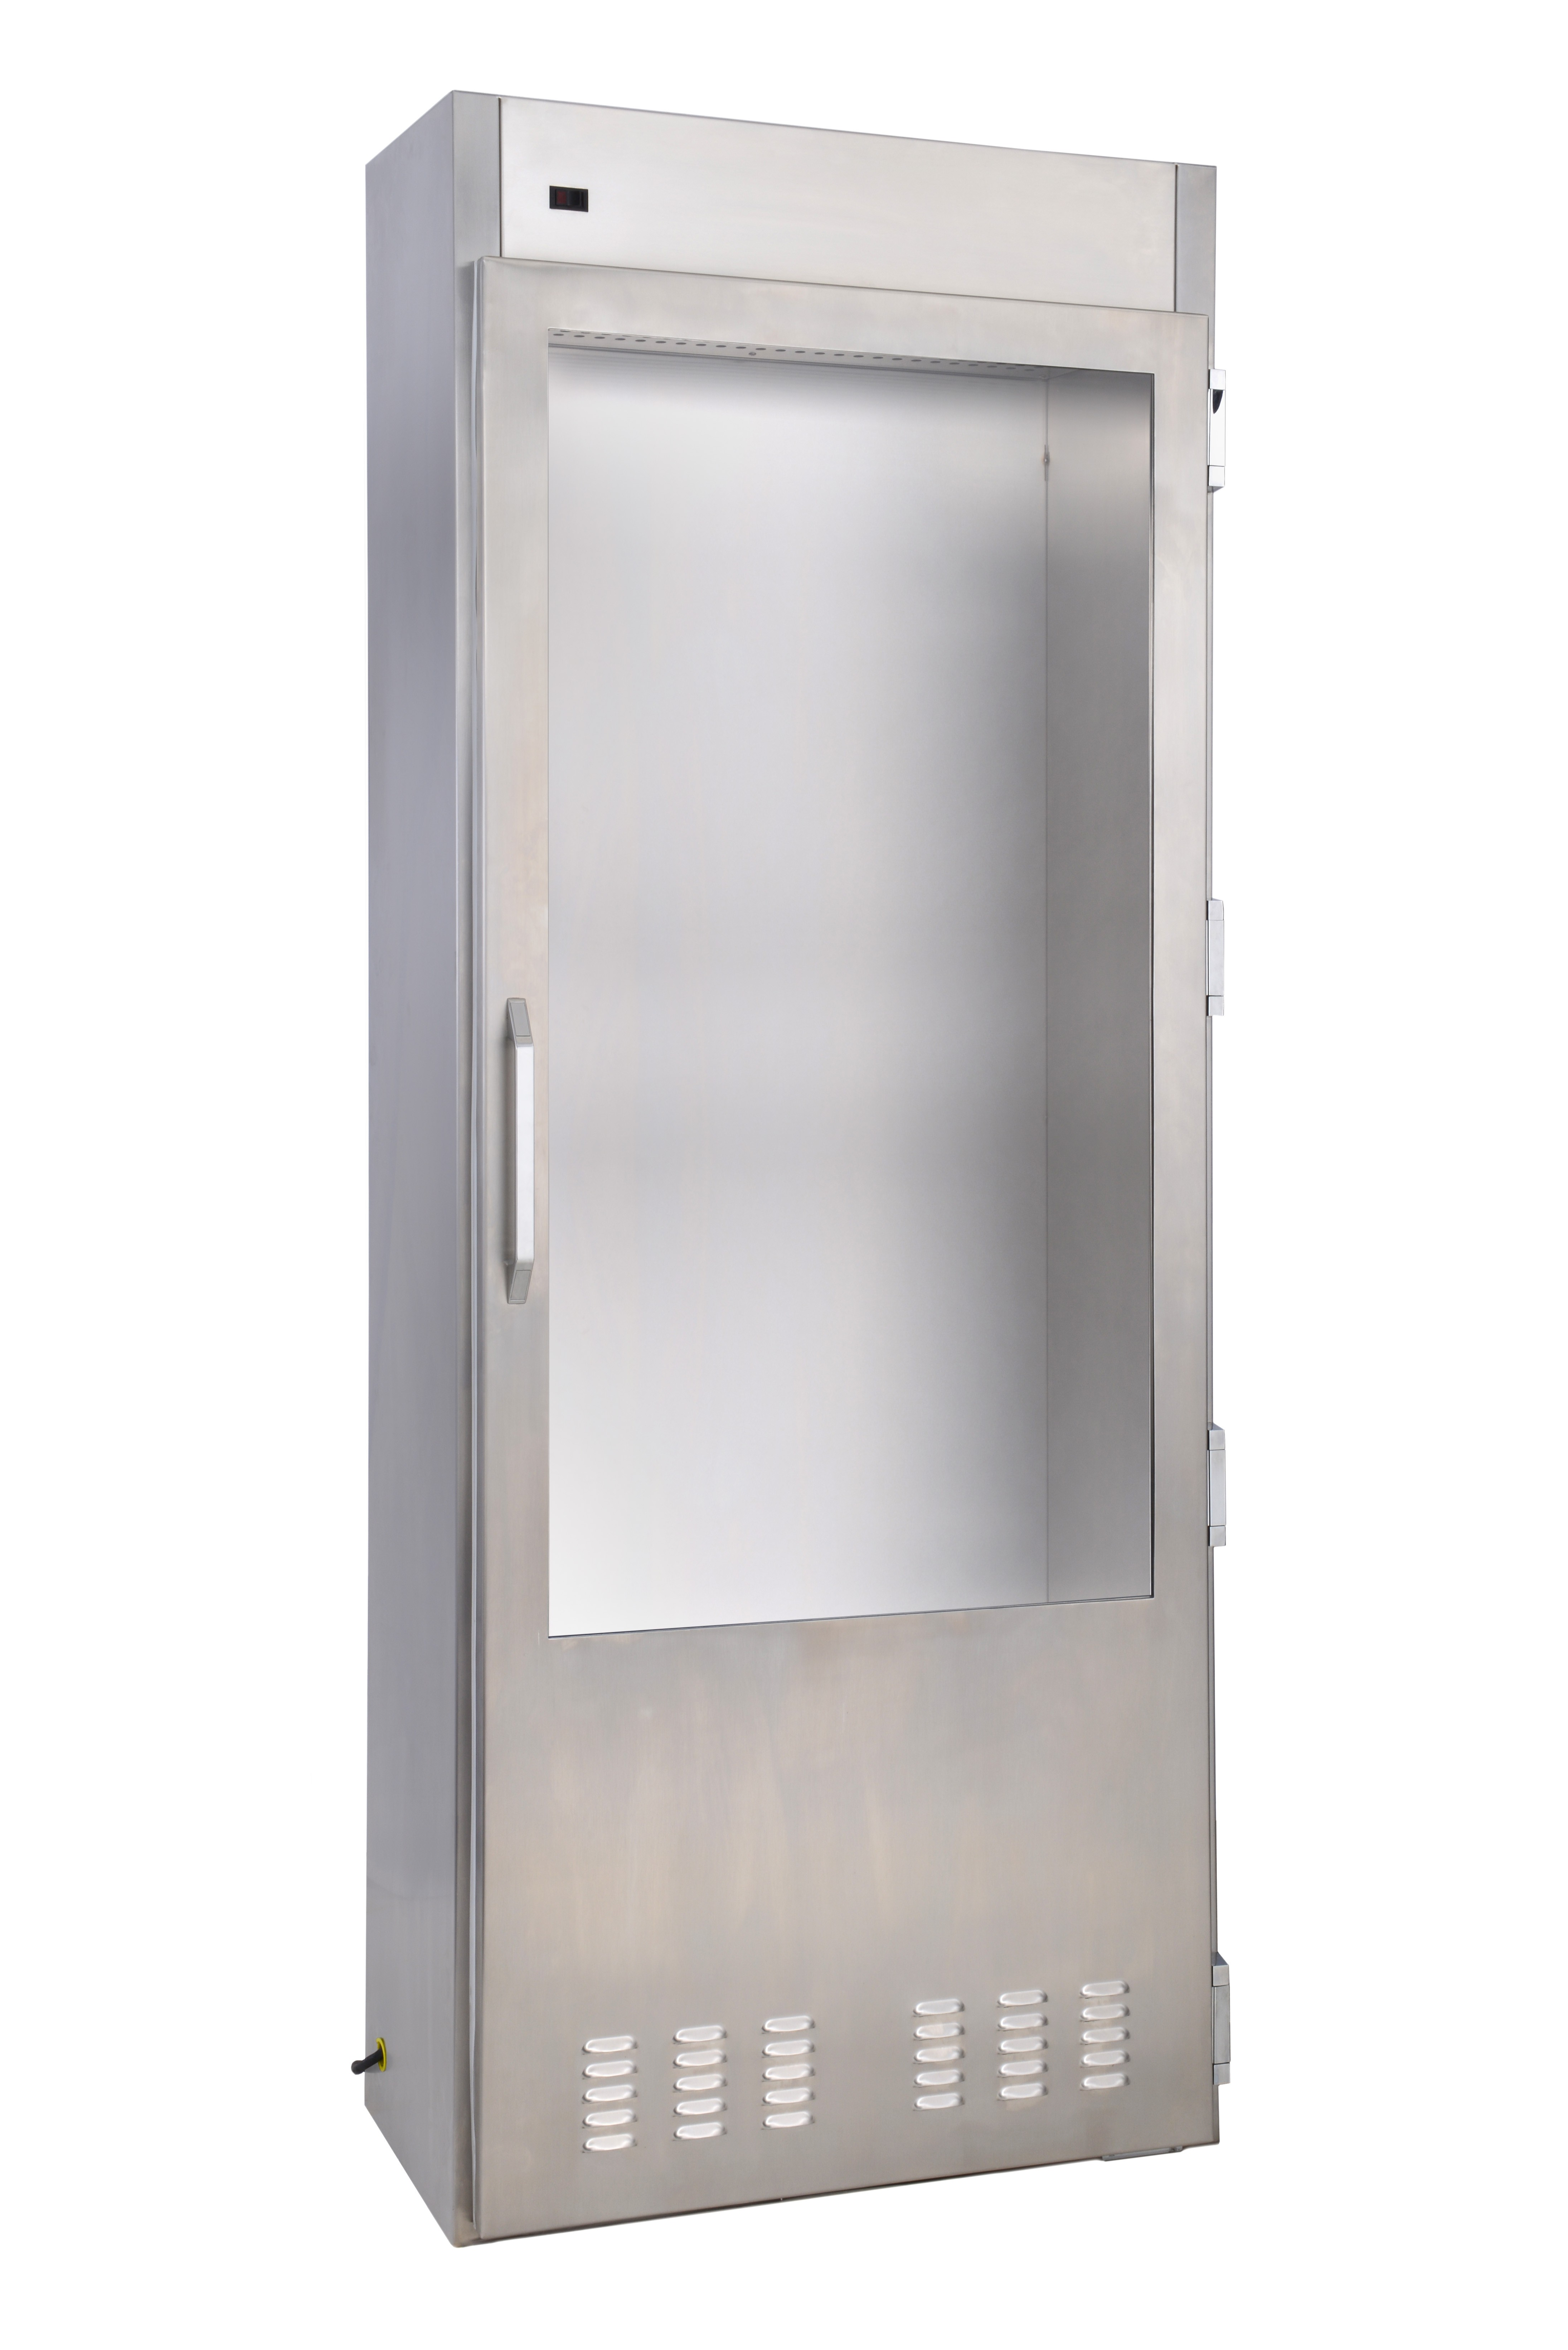 Flexible Endoscope Storage Cabinets ~ Medwurx stainless steel clean air ventilated flexible